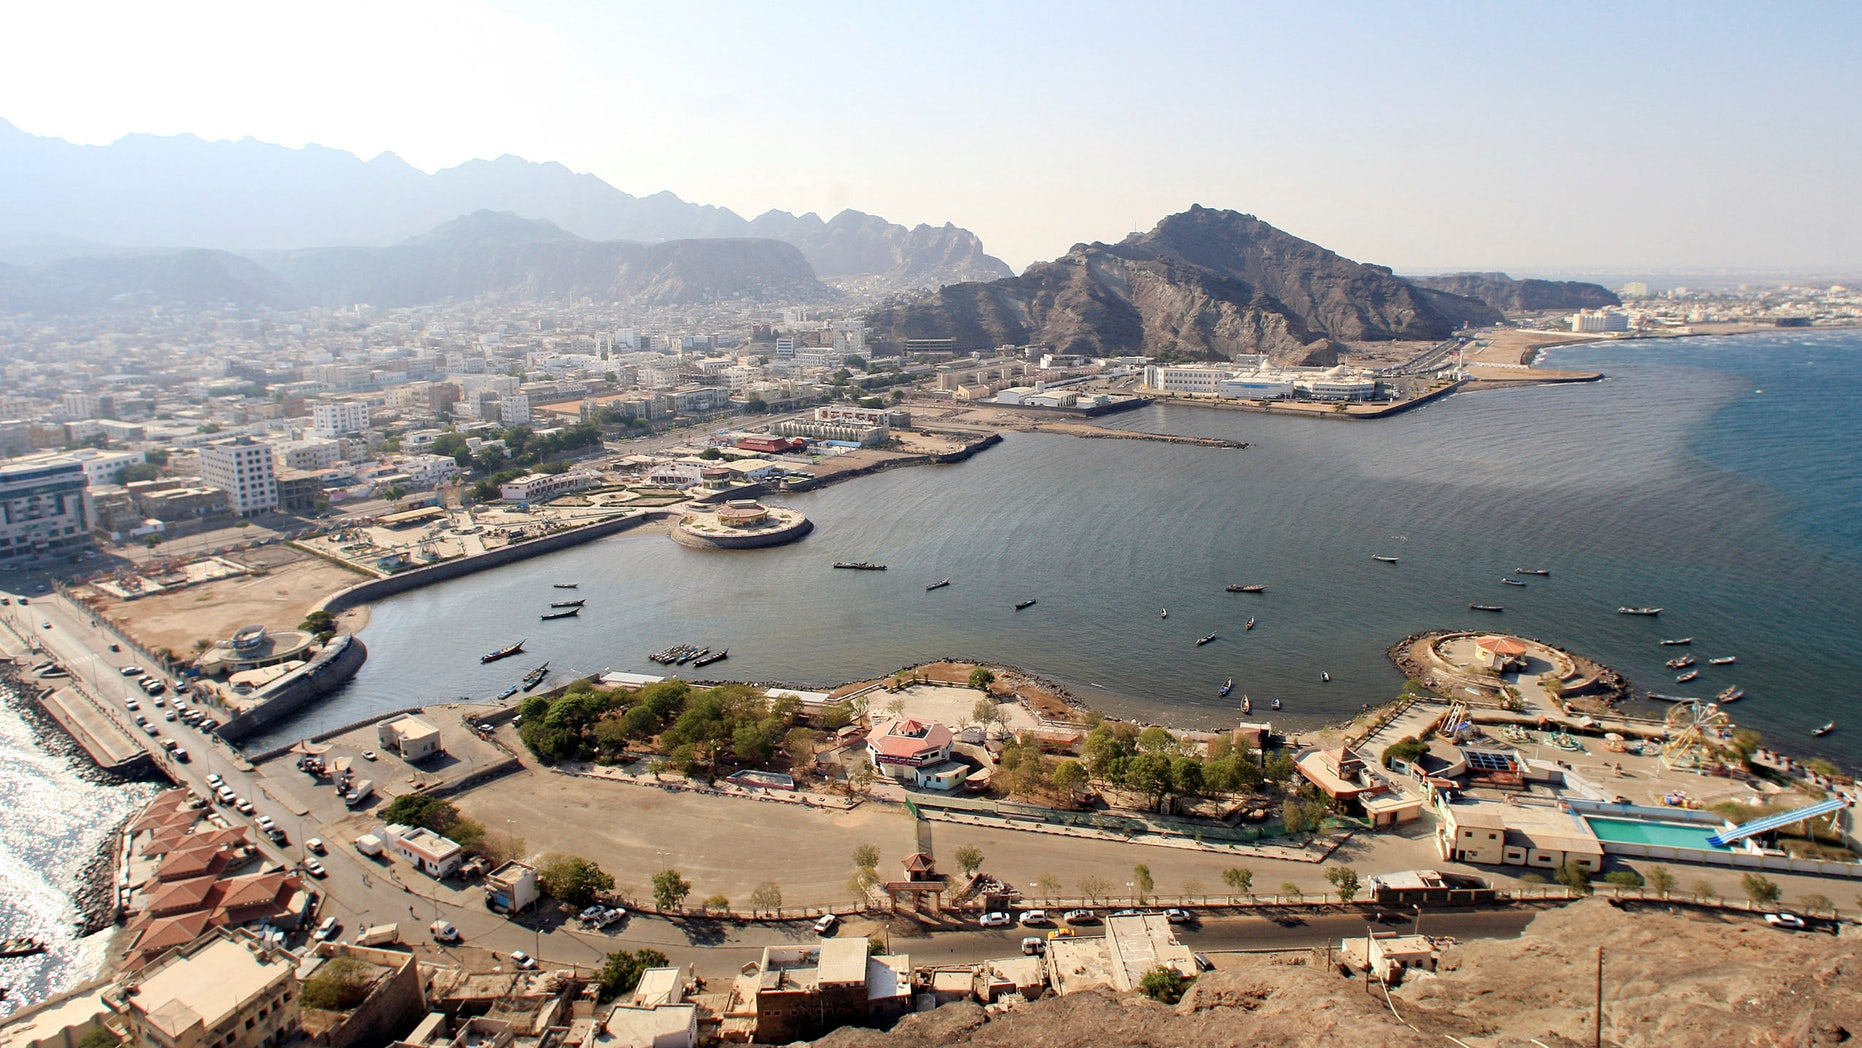 An aerial view of Aden.